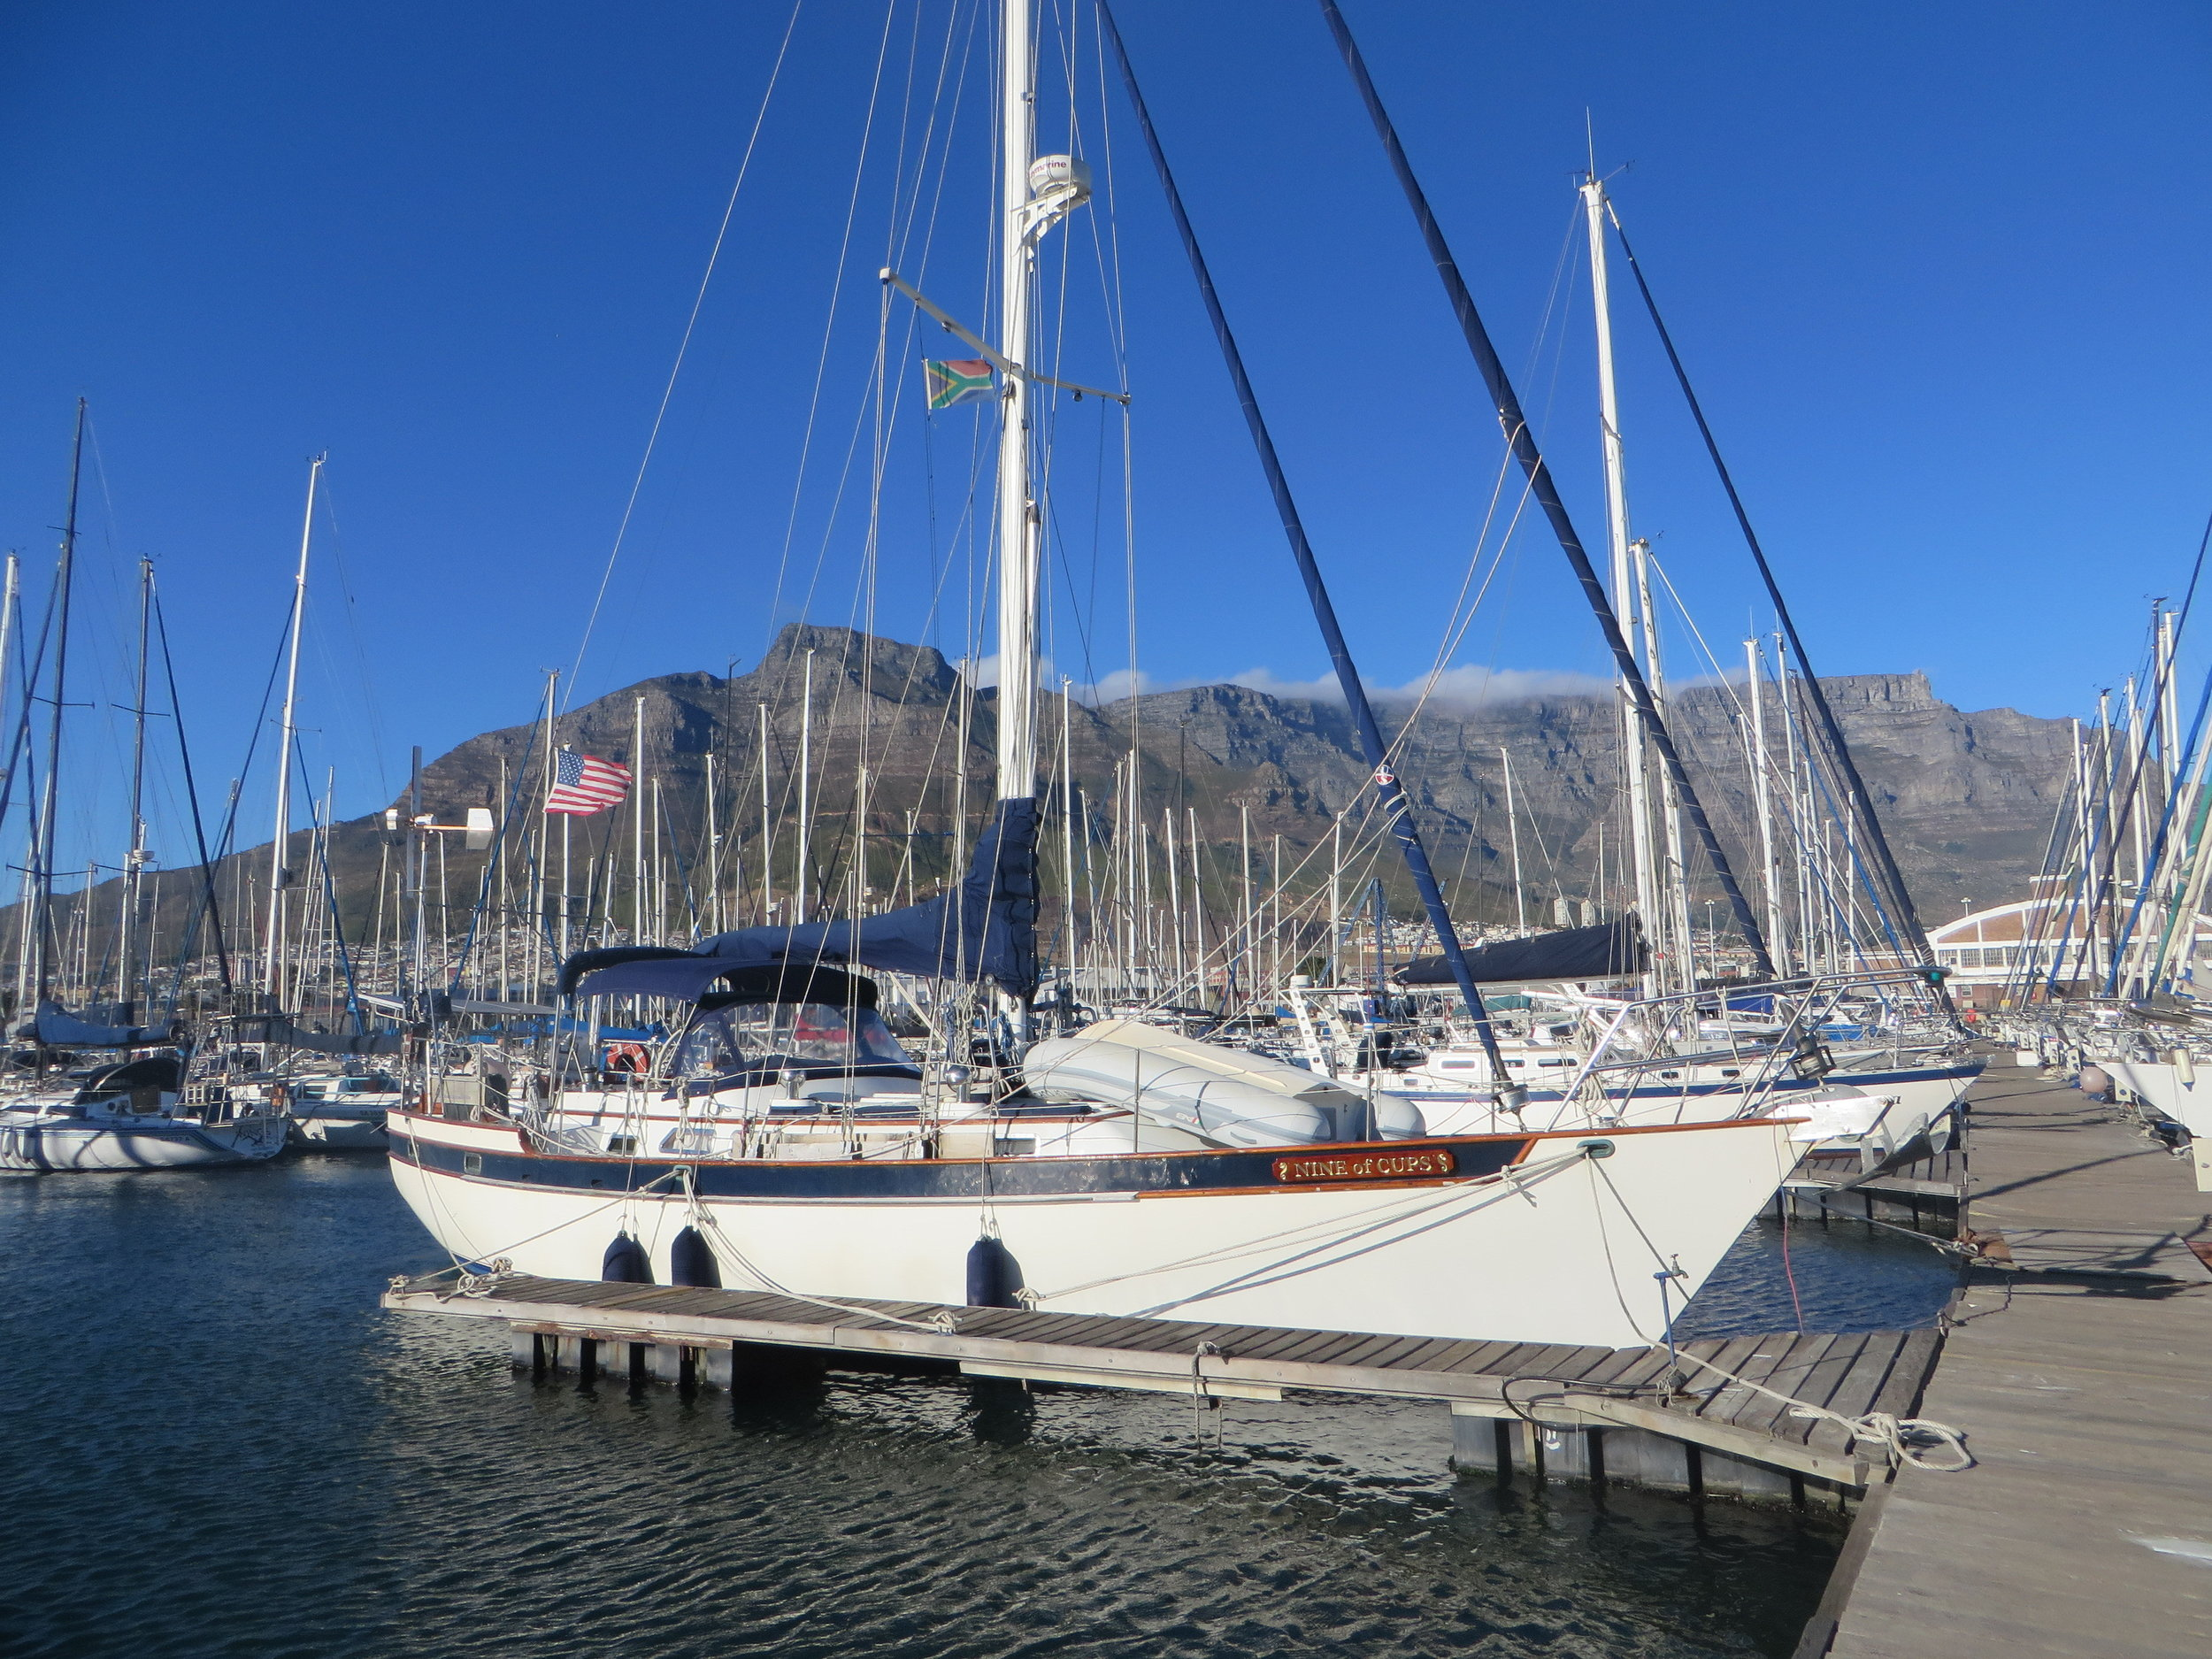 Cups safely tied up at the Royal Cape Yacht Club with Table Mountain as the backdrop ...a circumnavigation of the world completed! Hooray!